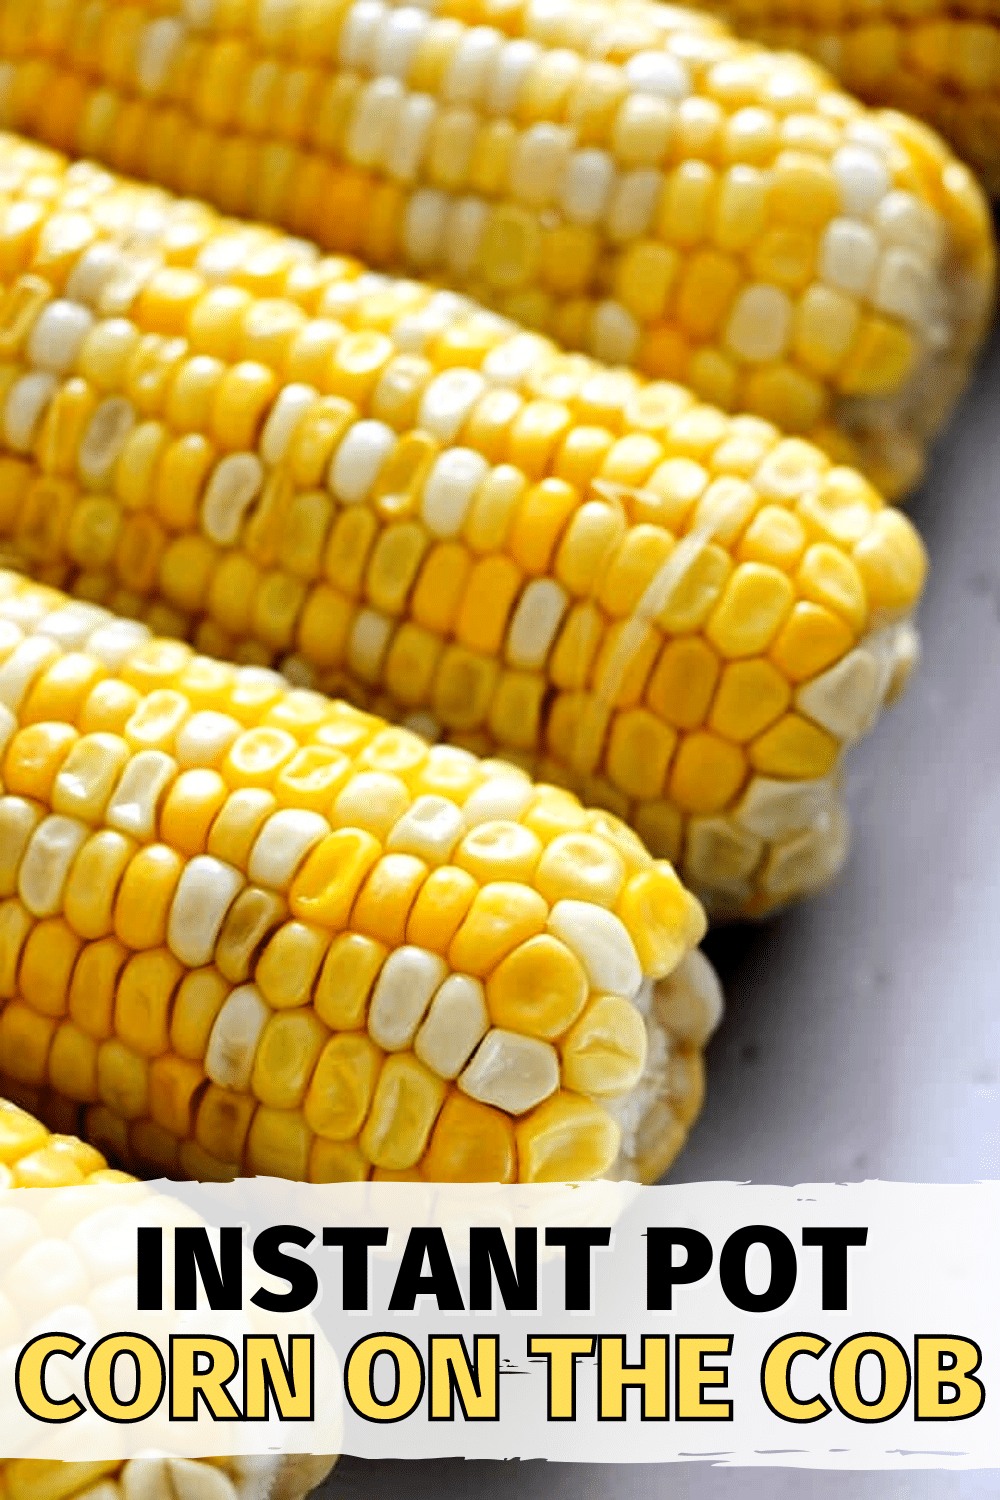 This Instant Pot Corn on the Cob is so much tastier than ordinary corn on the cob. You have to try this super easy recipe! #instantpot #pressurecooker #cornonthecob via @wondermomwannab